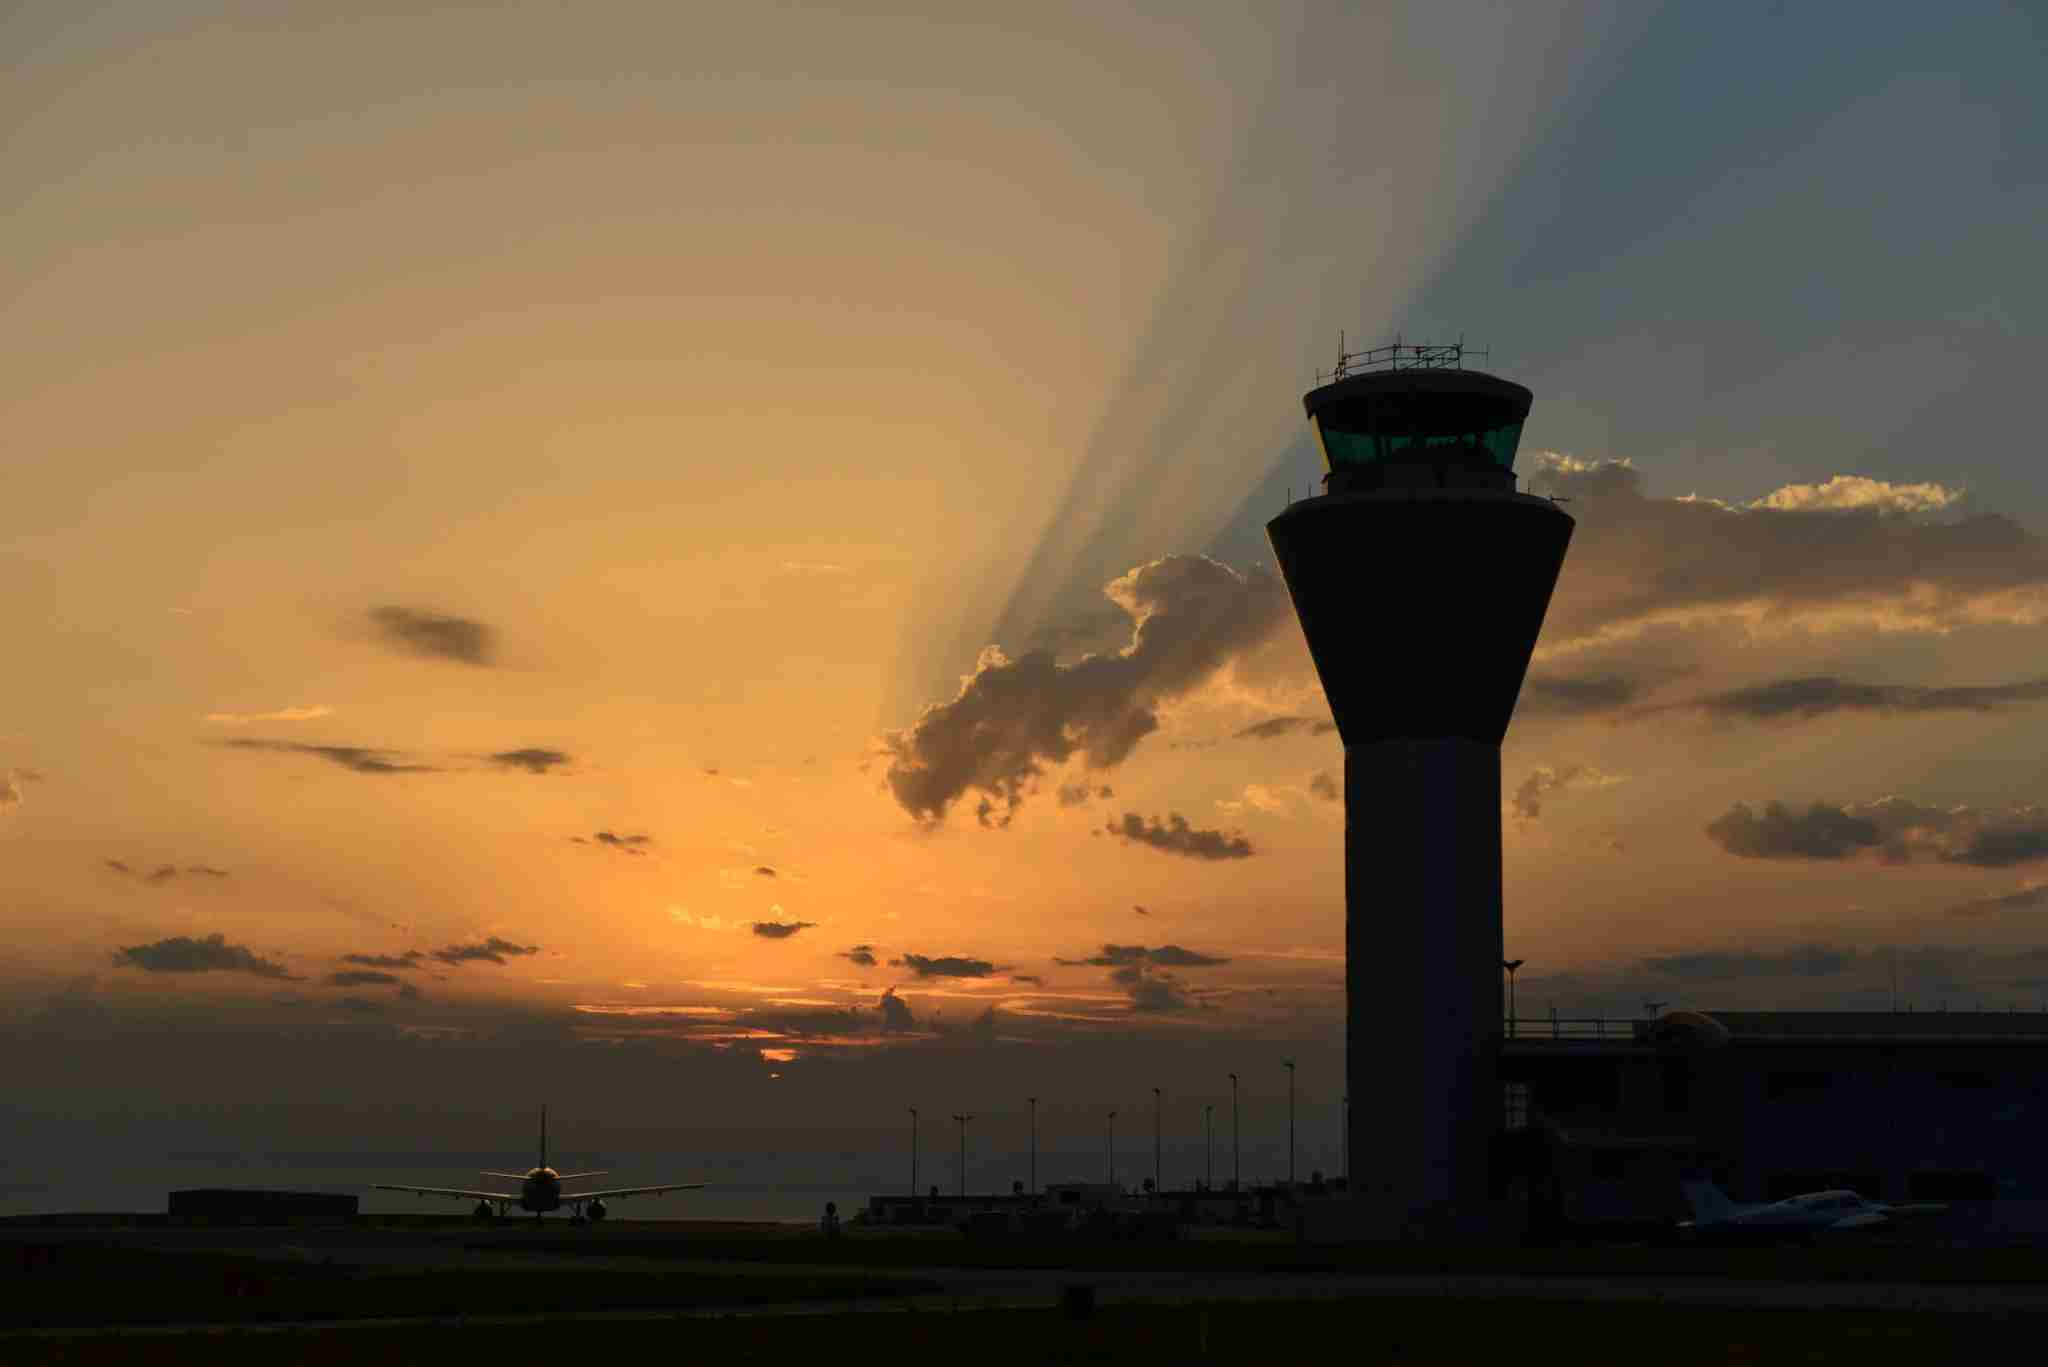 Airport control tower with a plane taxiing to the runway under a dramatic sunray sunset in the Summer. (Photo by Alan_Lagadu / Getty Images)